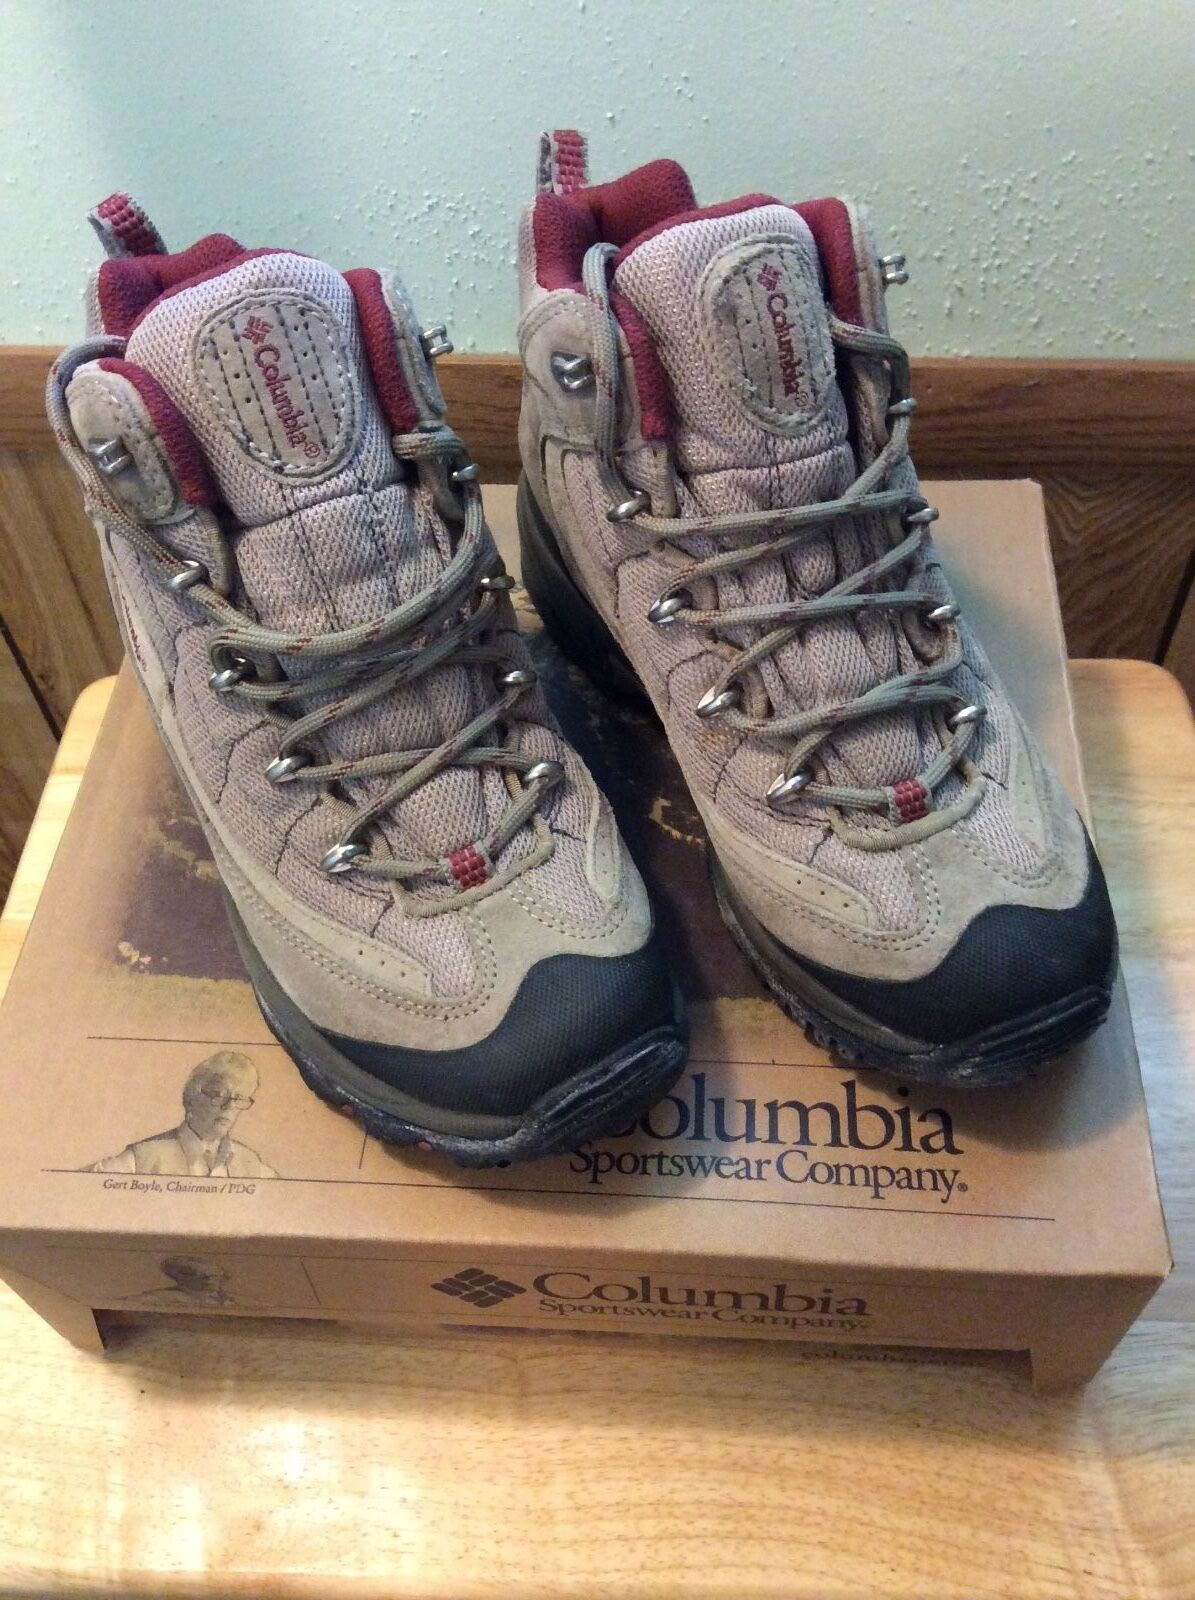 Columbia  Day Day Day Pack II  Mid Hiking Boot shoes - Size 8 Waterproof Tusk Ivory a417cb